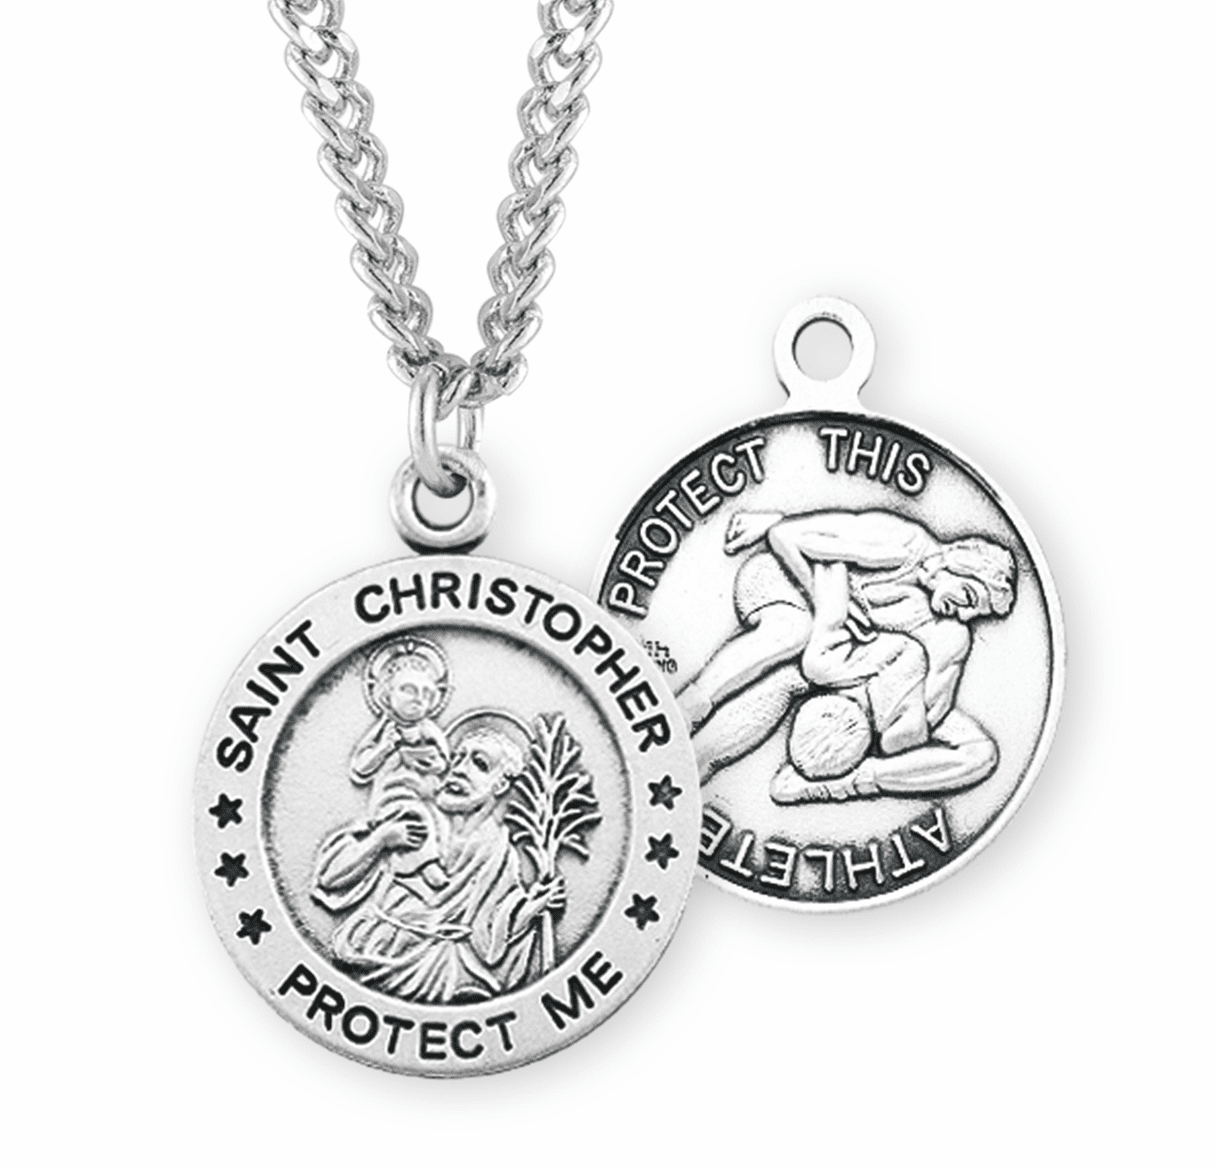 St Christopher Round Wrestling Sports Saint Medal Necklace by HMH Religious